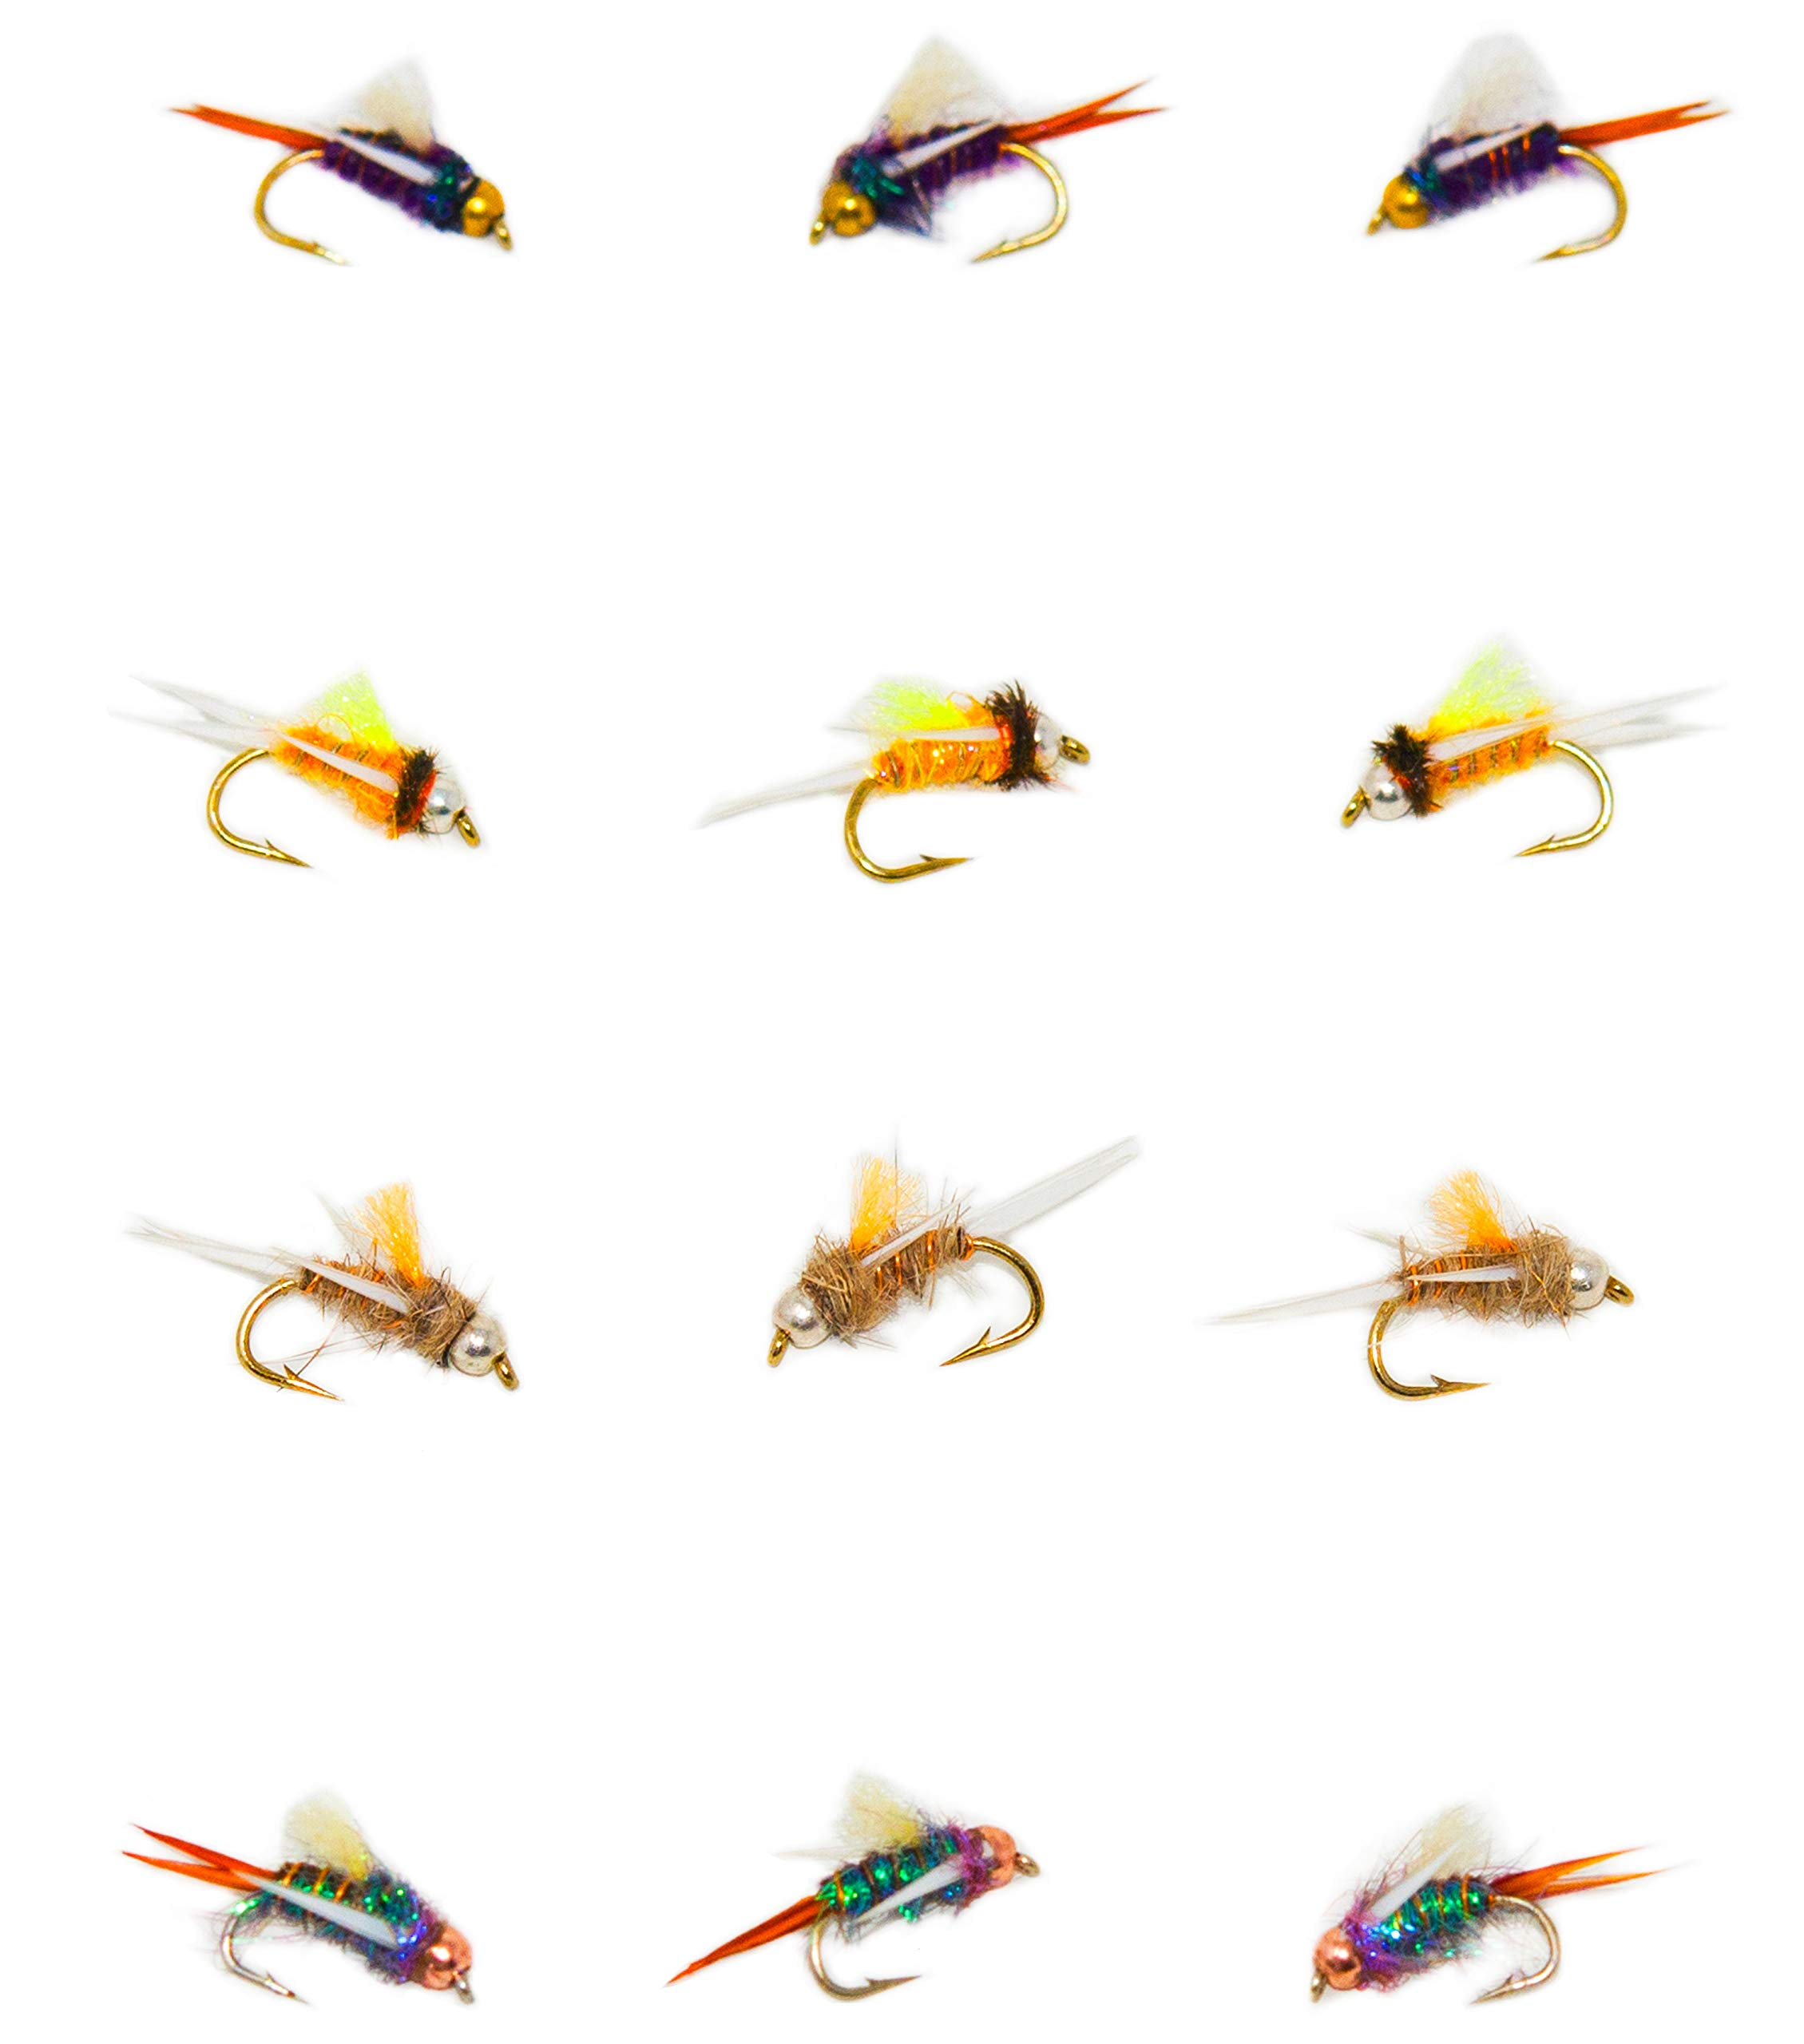 Outdoor Planet 12 Psycho Prince Attractor Nymph Flies/Wet Flies for Trout and Steelhead Fly Fishing Flies Lure Assortment by Outdoor Planet